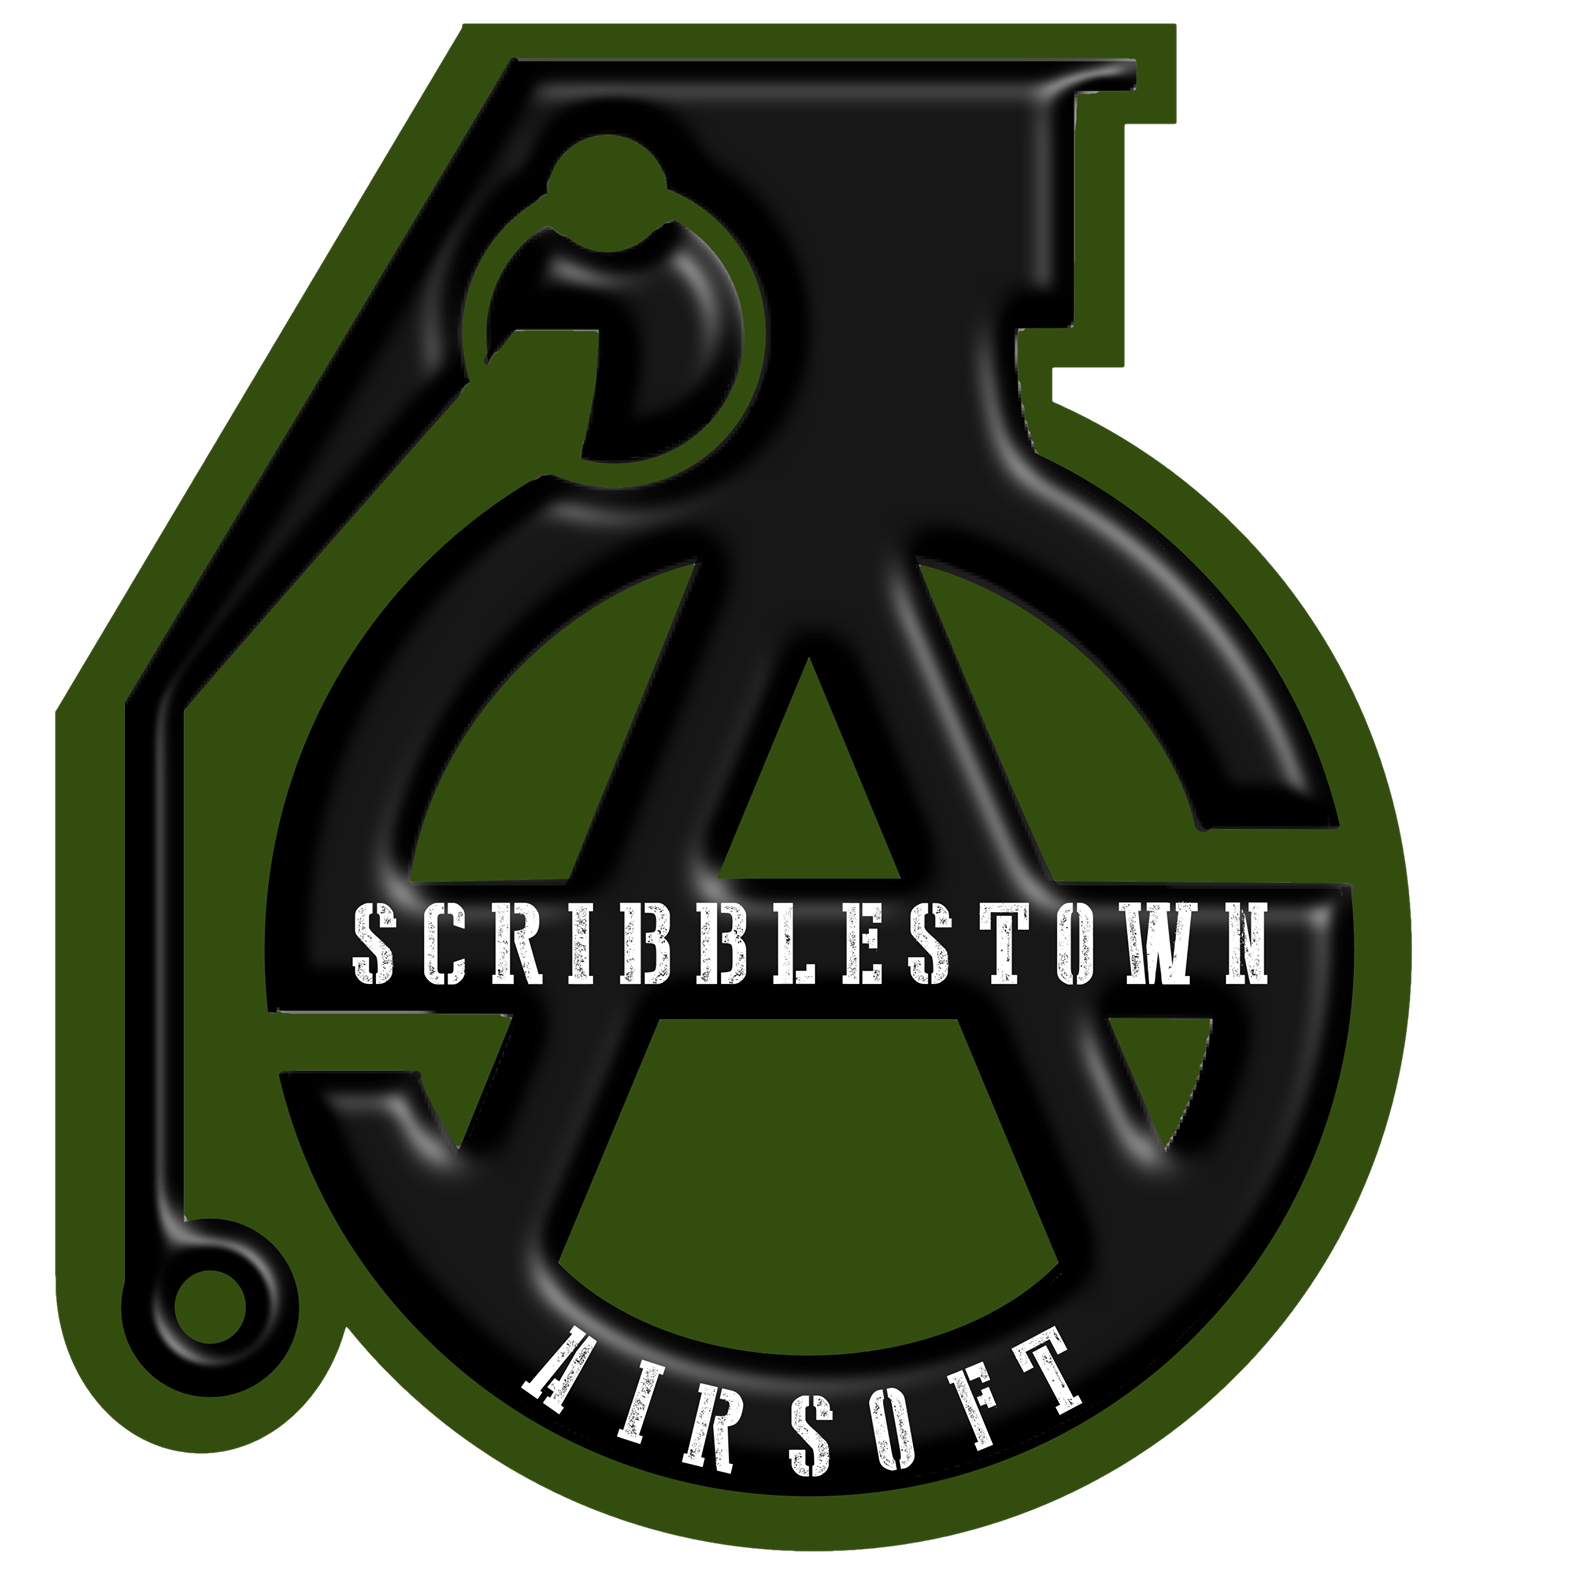 Scribblestown Airsoft